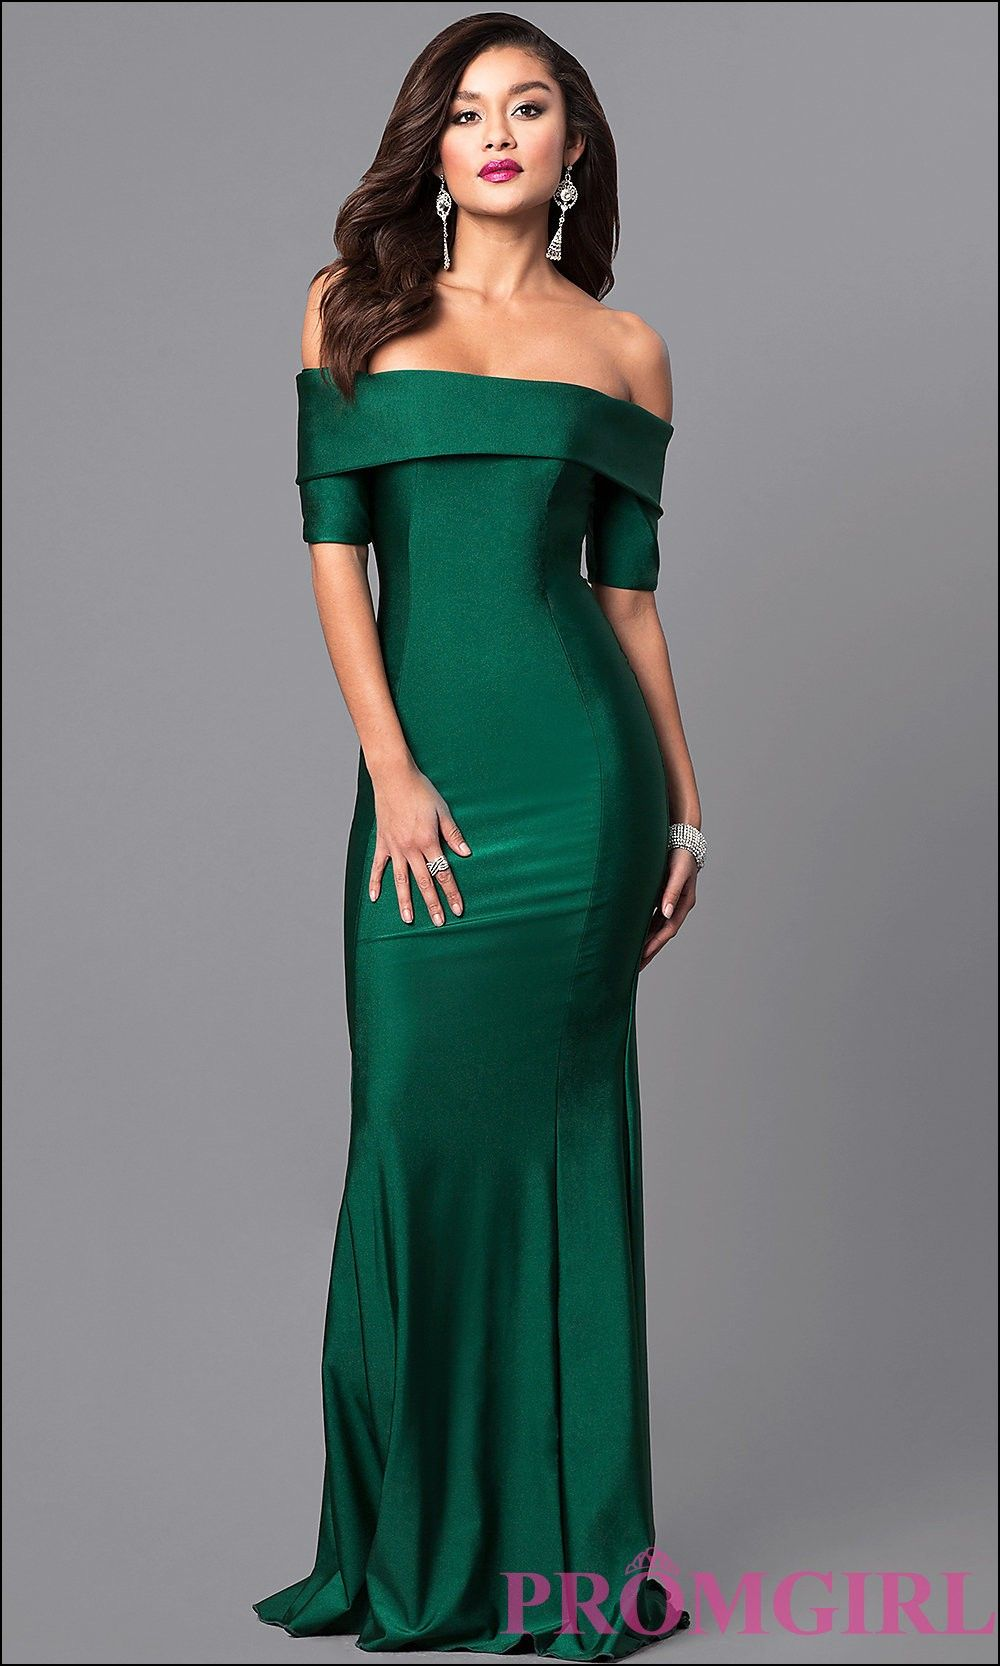 Forest green gowns fashion pinterest green gown gowns and